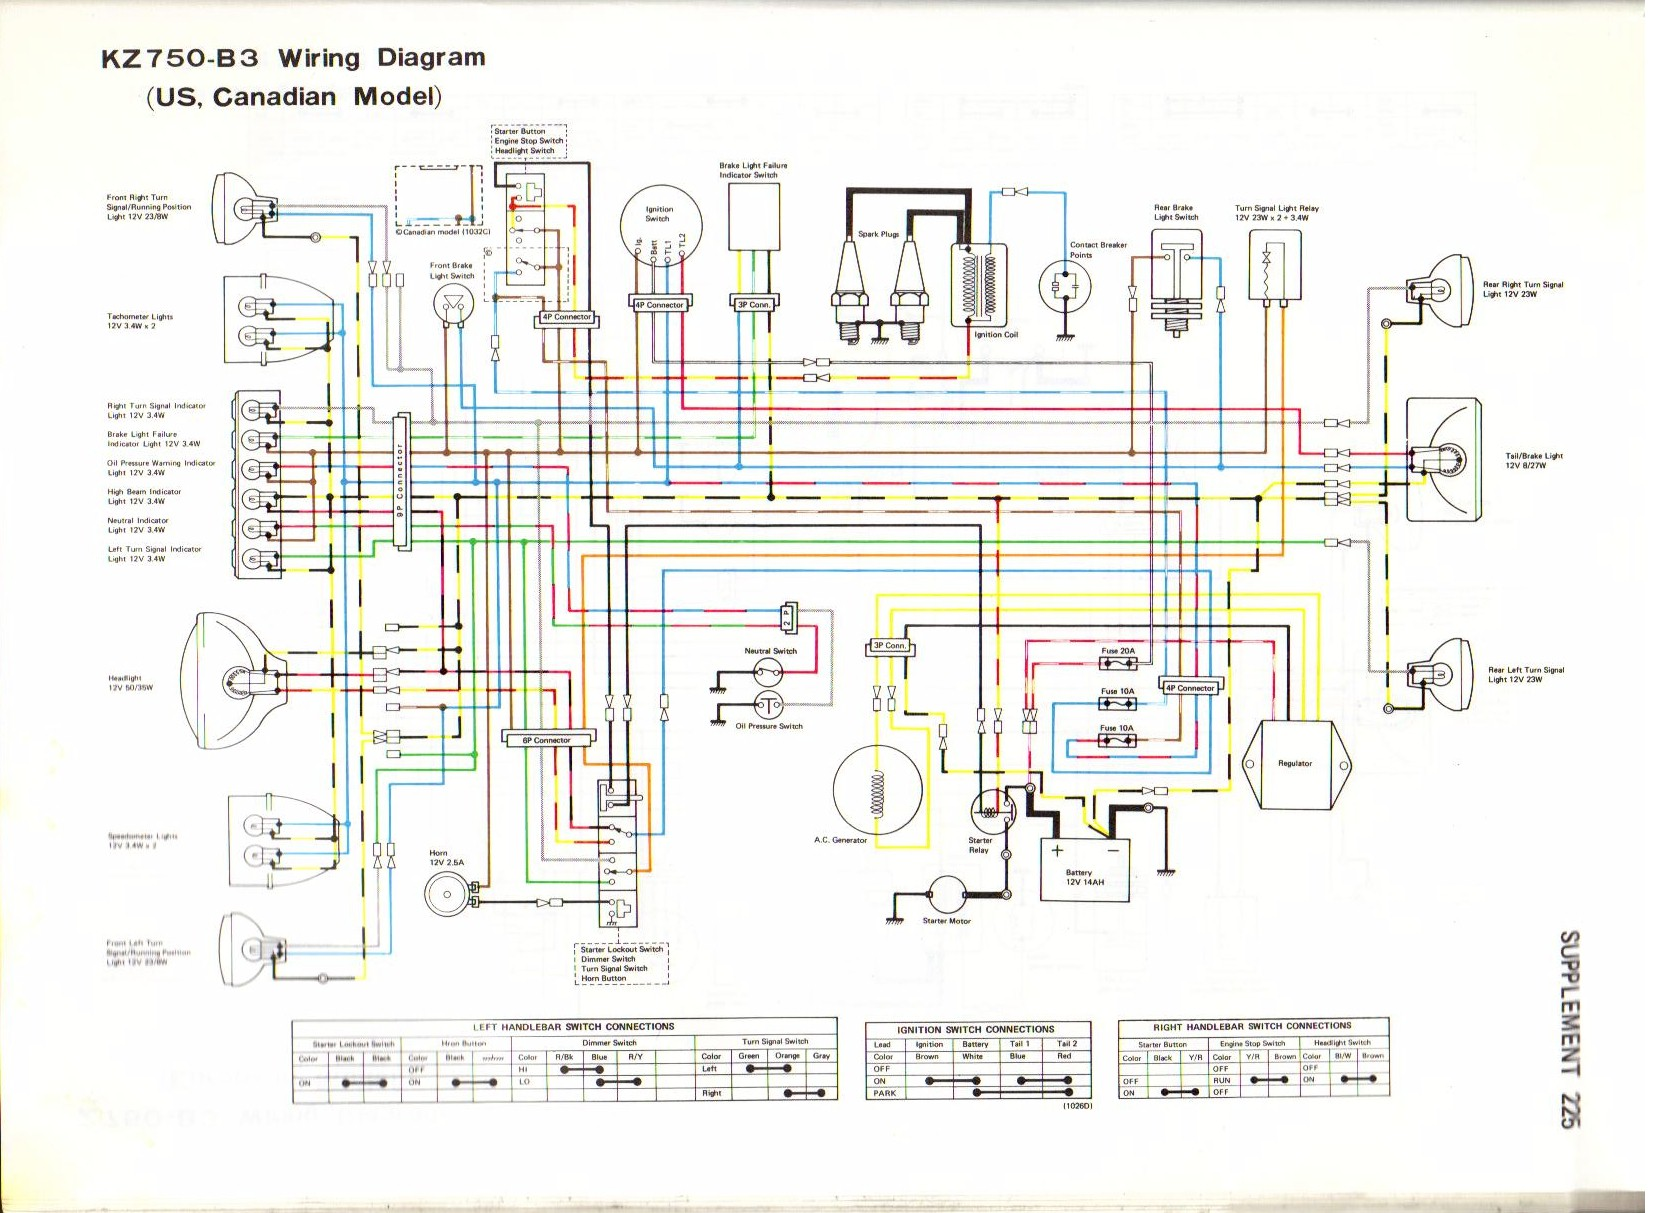 kz750b3 service manuals kz750 twin kz750 twins com 1980 kawasaki 440 ltd wiring diagram at bakdesigns.co